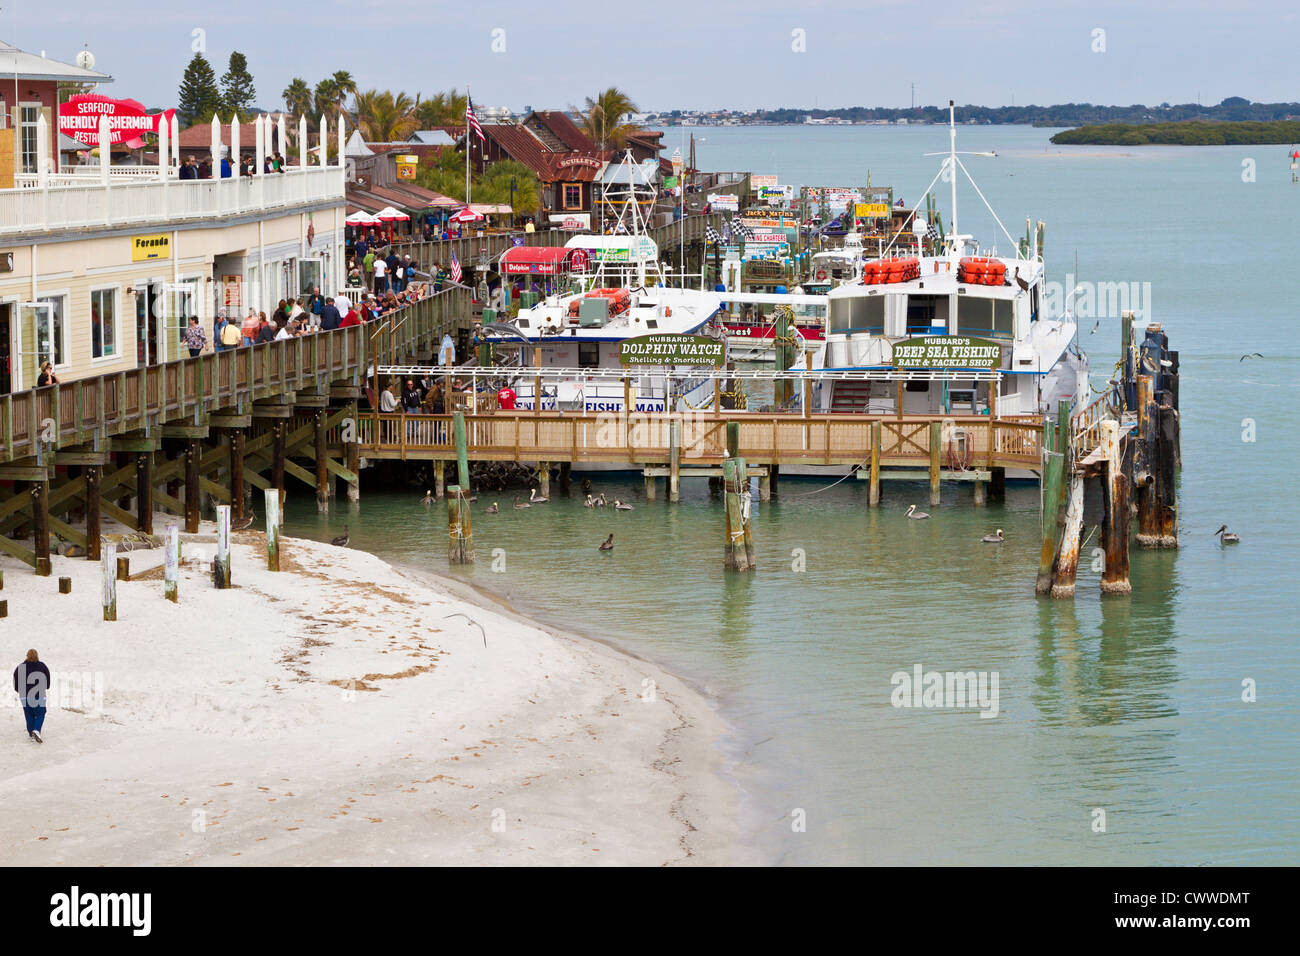 Fishing charters restaurants and shops at john 39 s pass in for Deep sea fishing johns pass